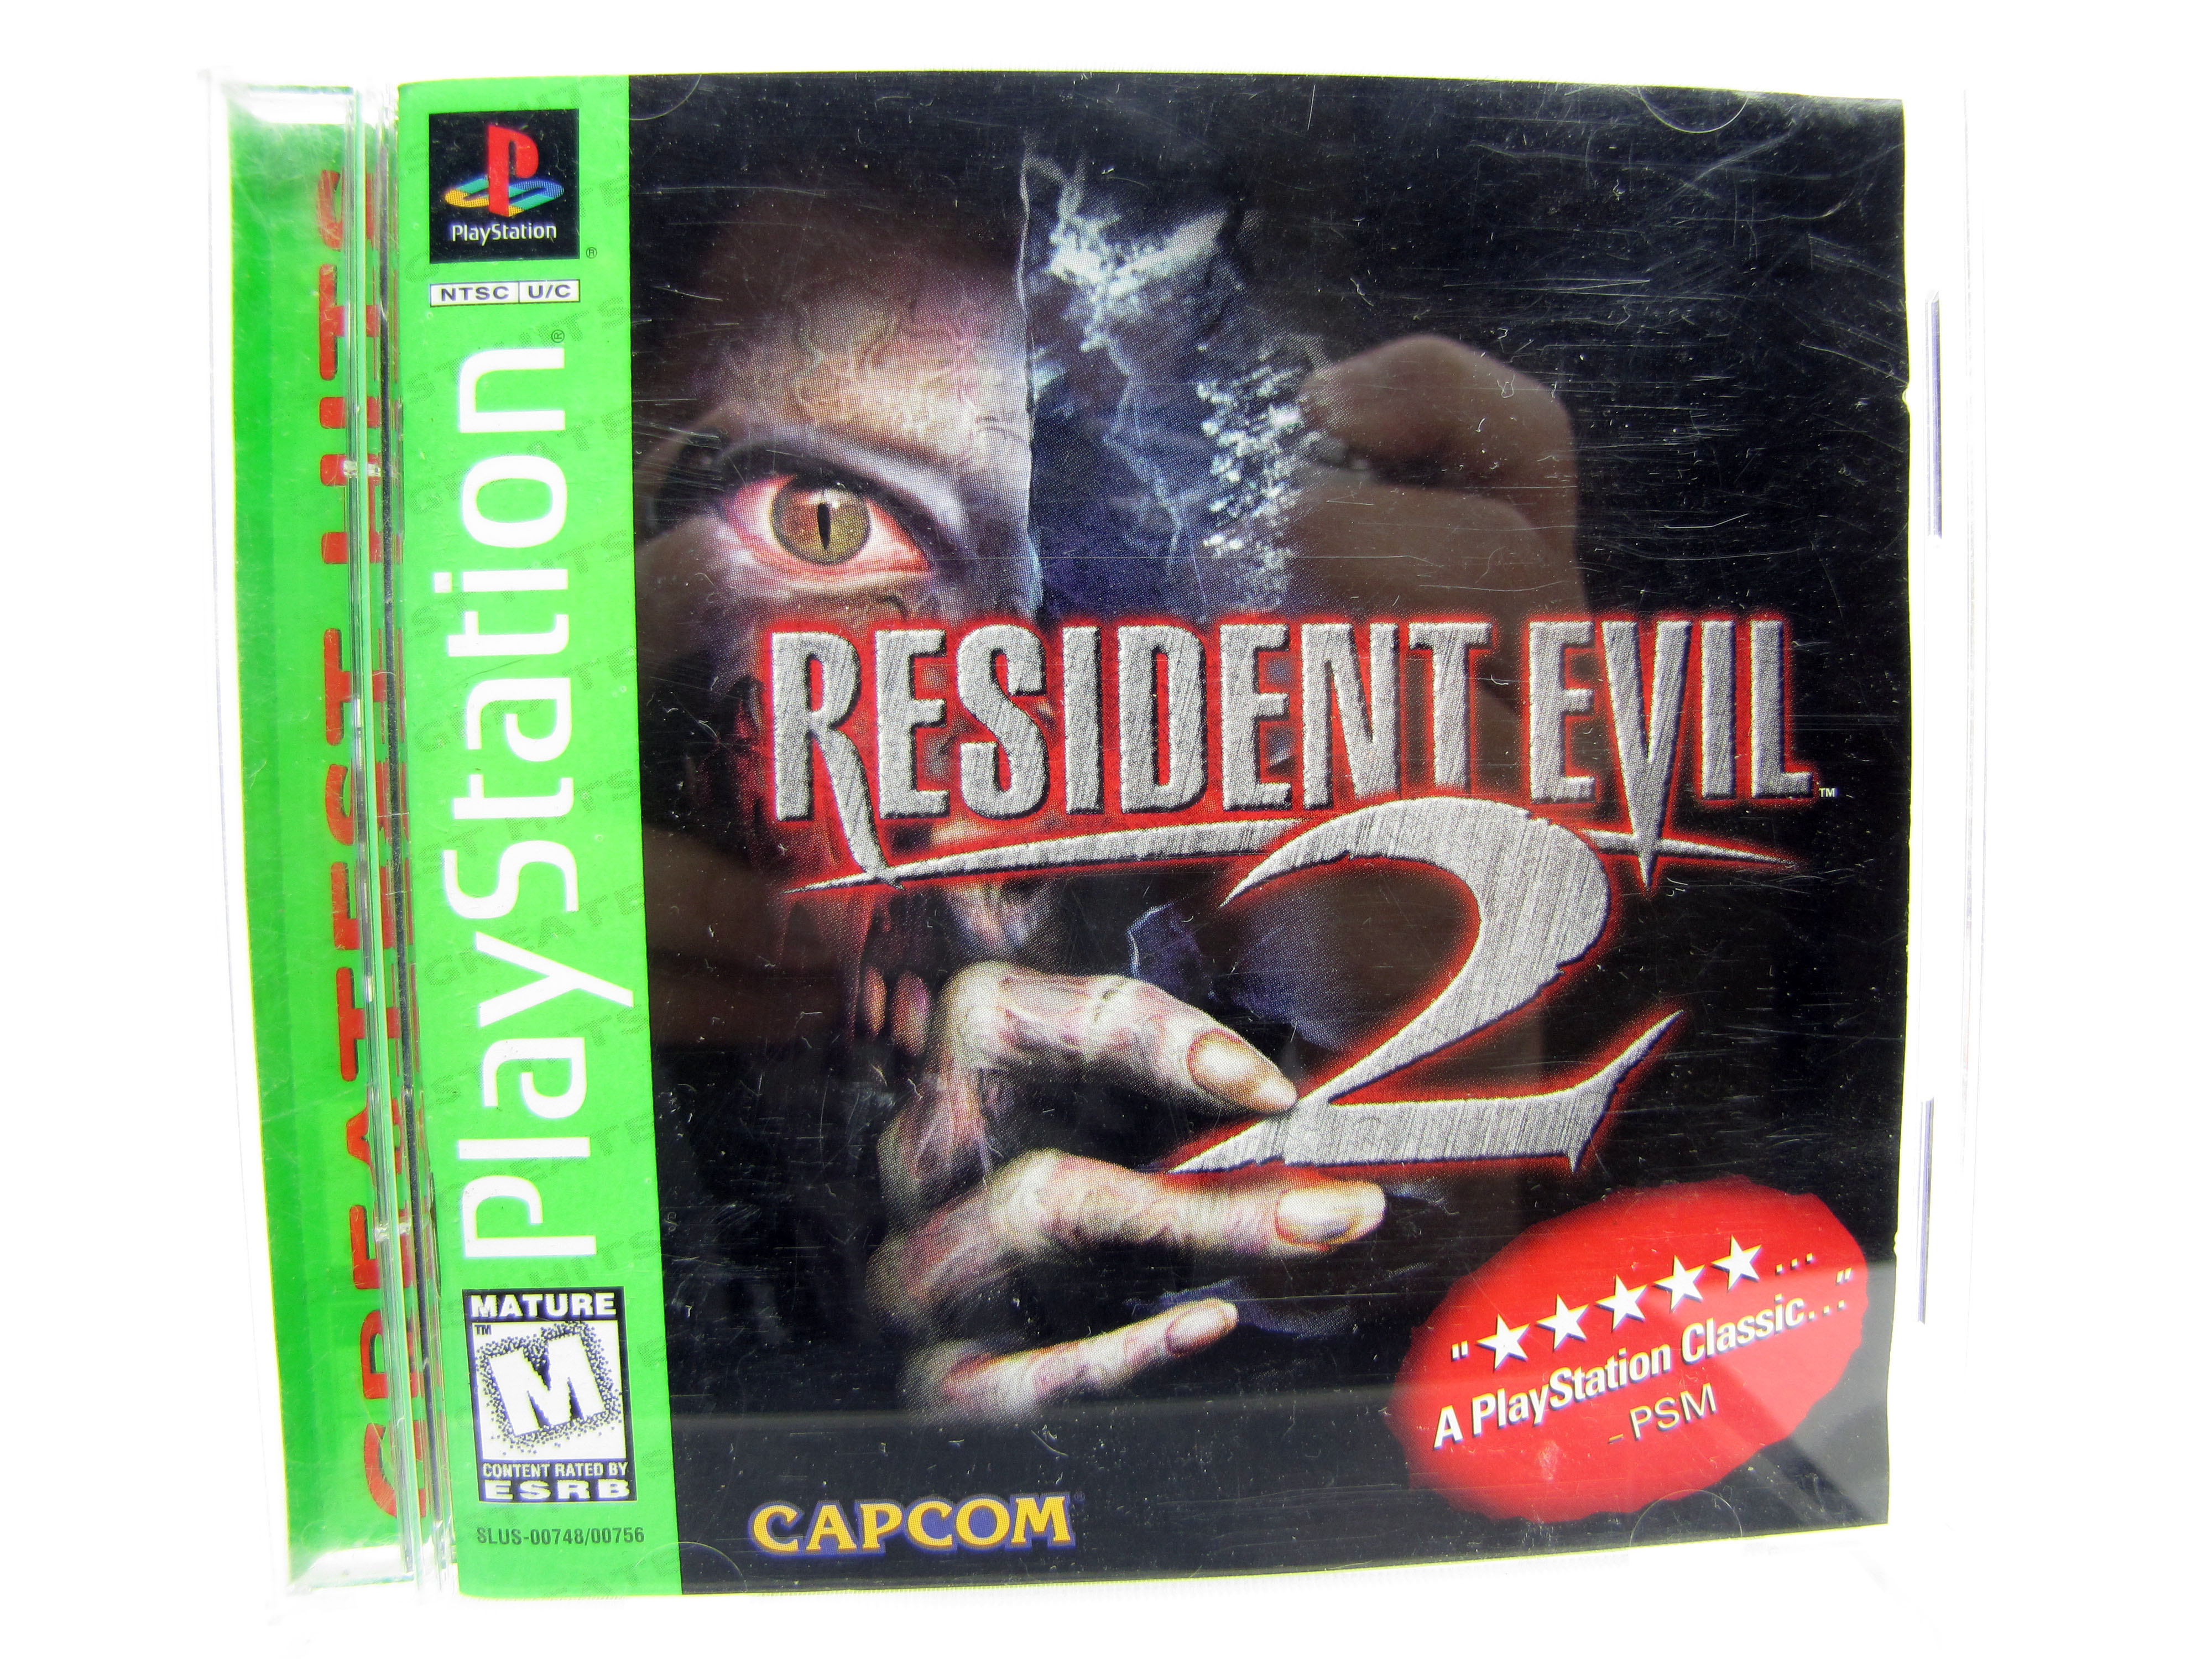 PS1 Resident Evil 2: Dual Shock Complete - 1998